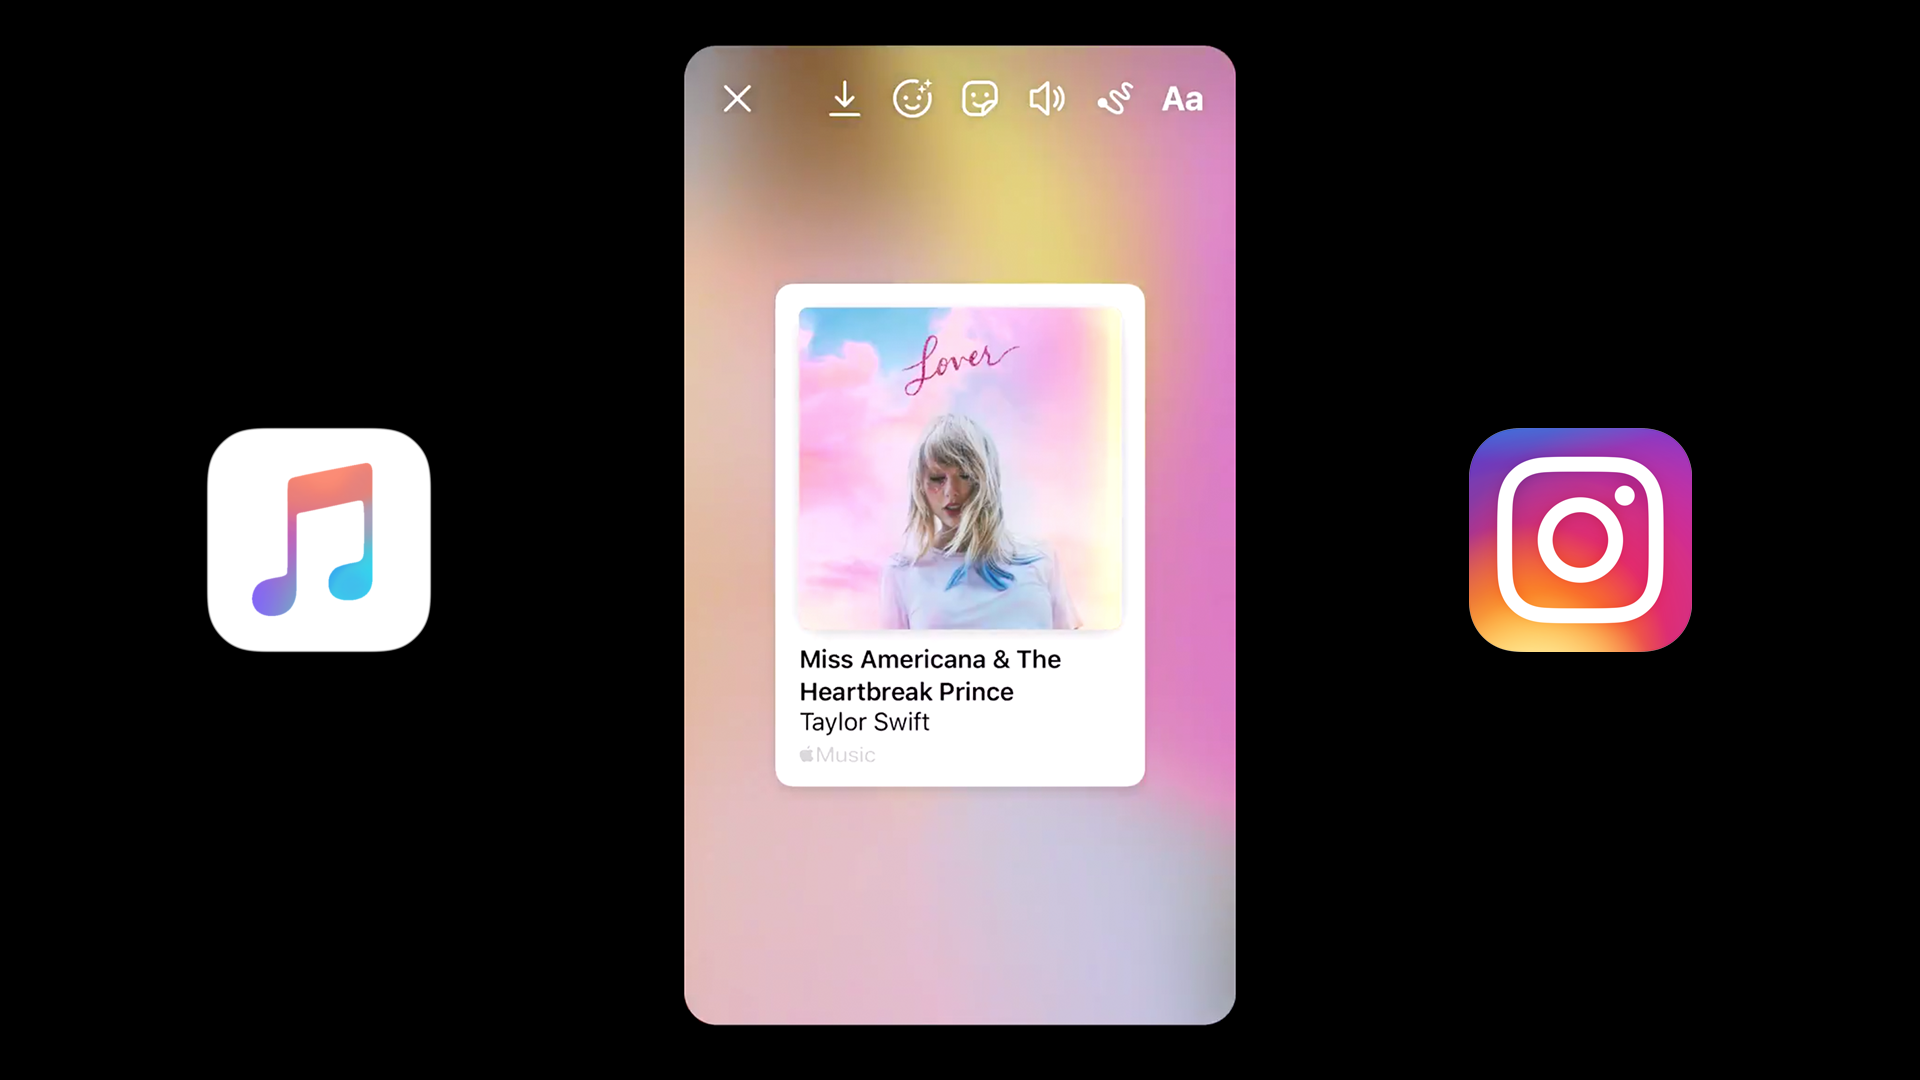 How to apply for apple music